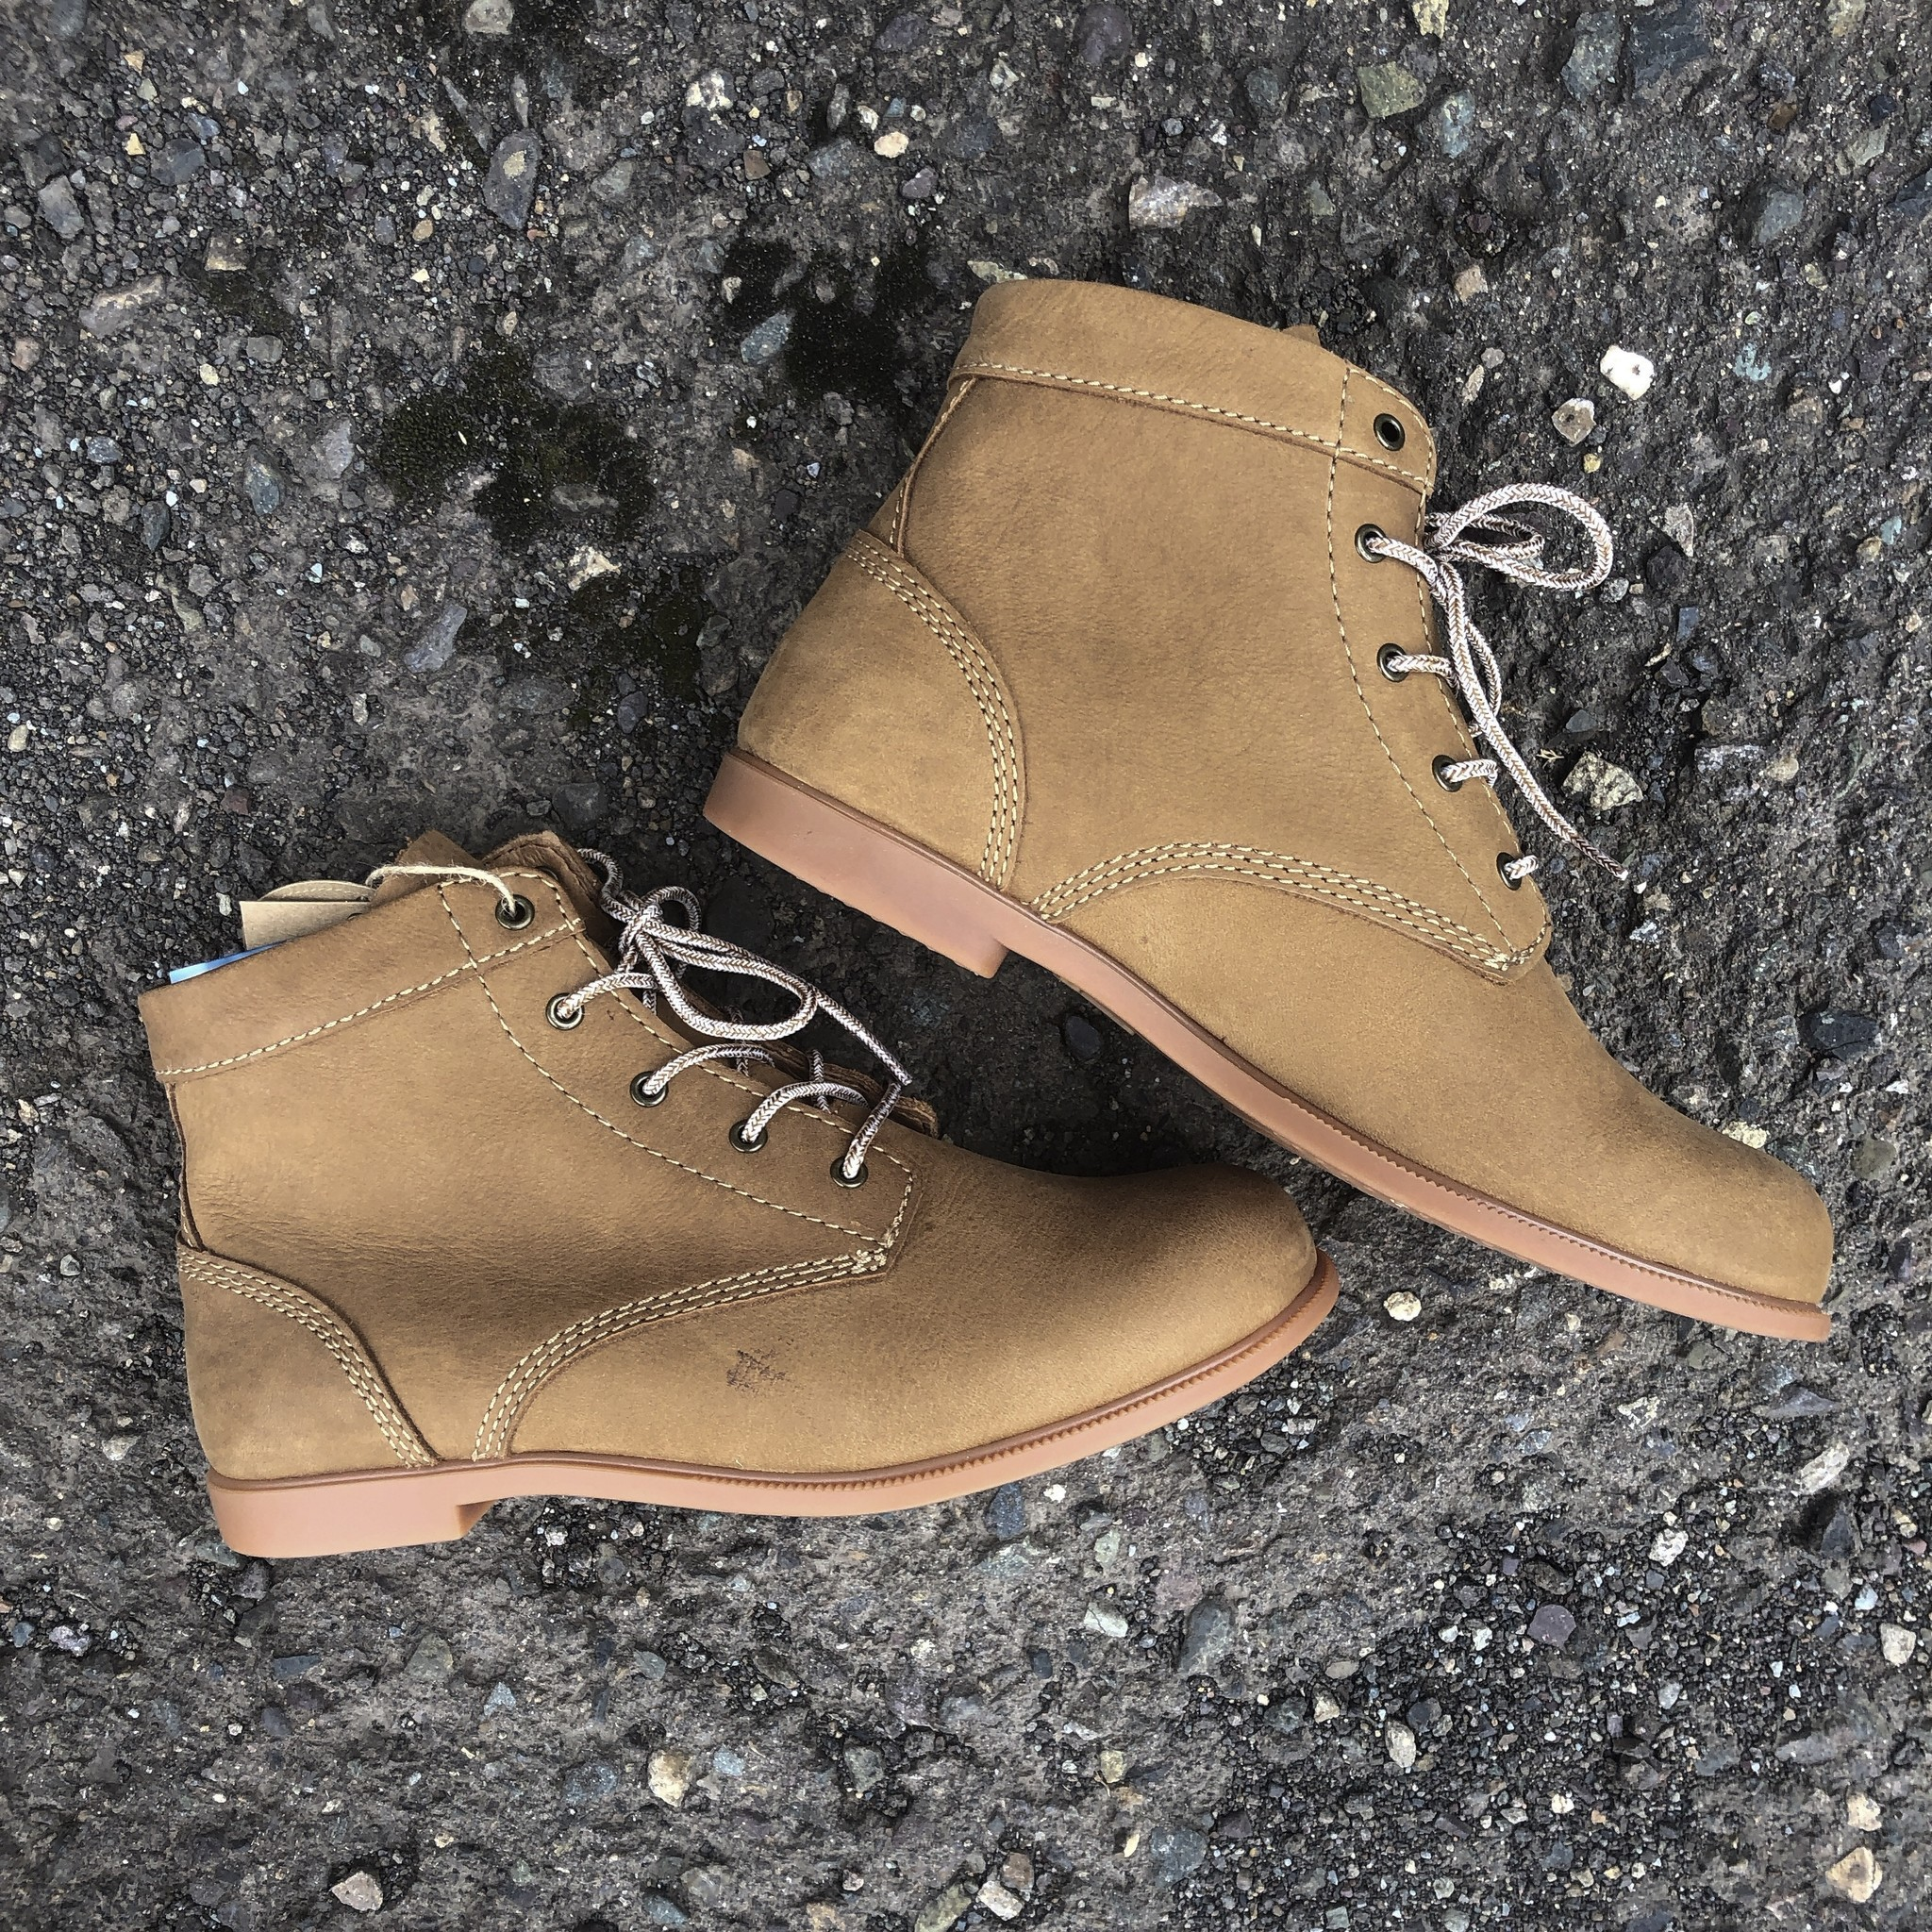 Kodiak Boots Low Rider Original Wheat